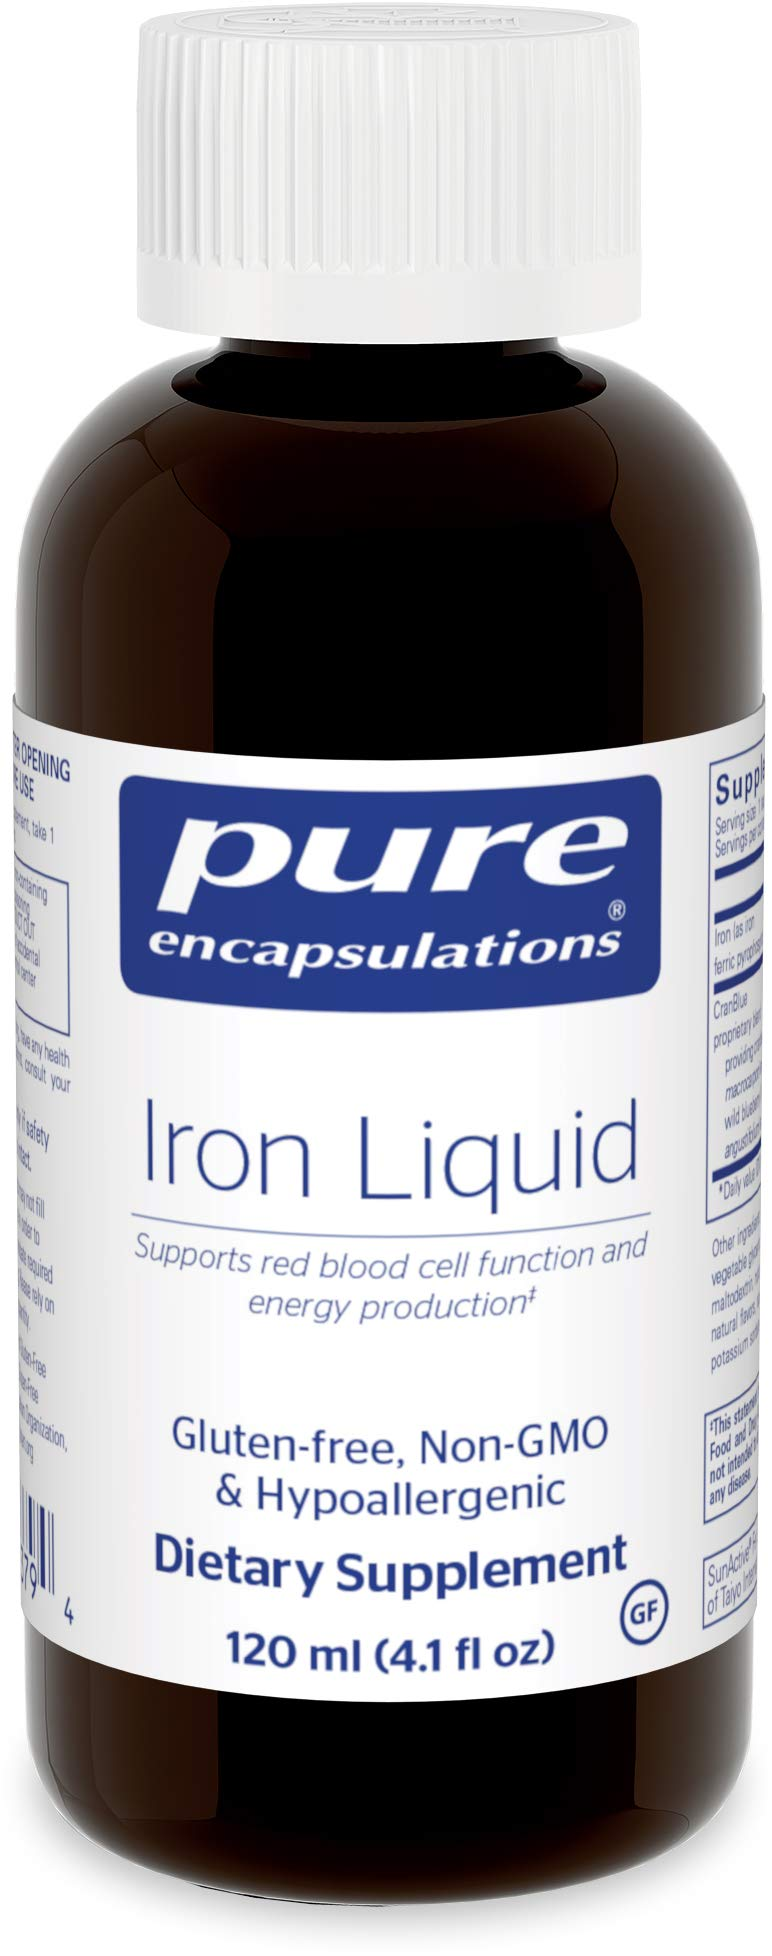 Pure Encapsulations - Iron Liquid - Hypoallergenic Supplement Supports Hemoglobin and Myoglobin Function - 4.1 fl. oz.